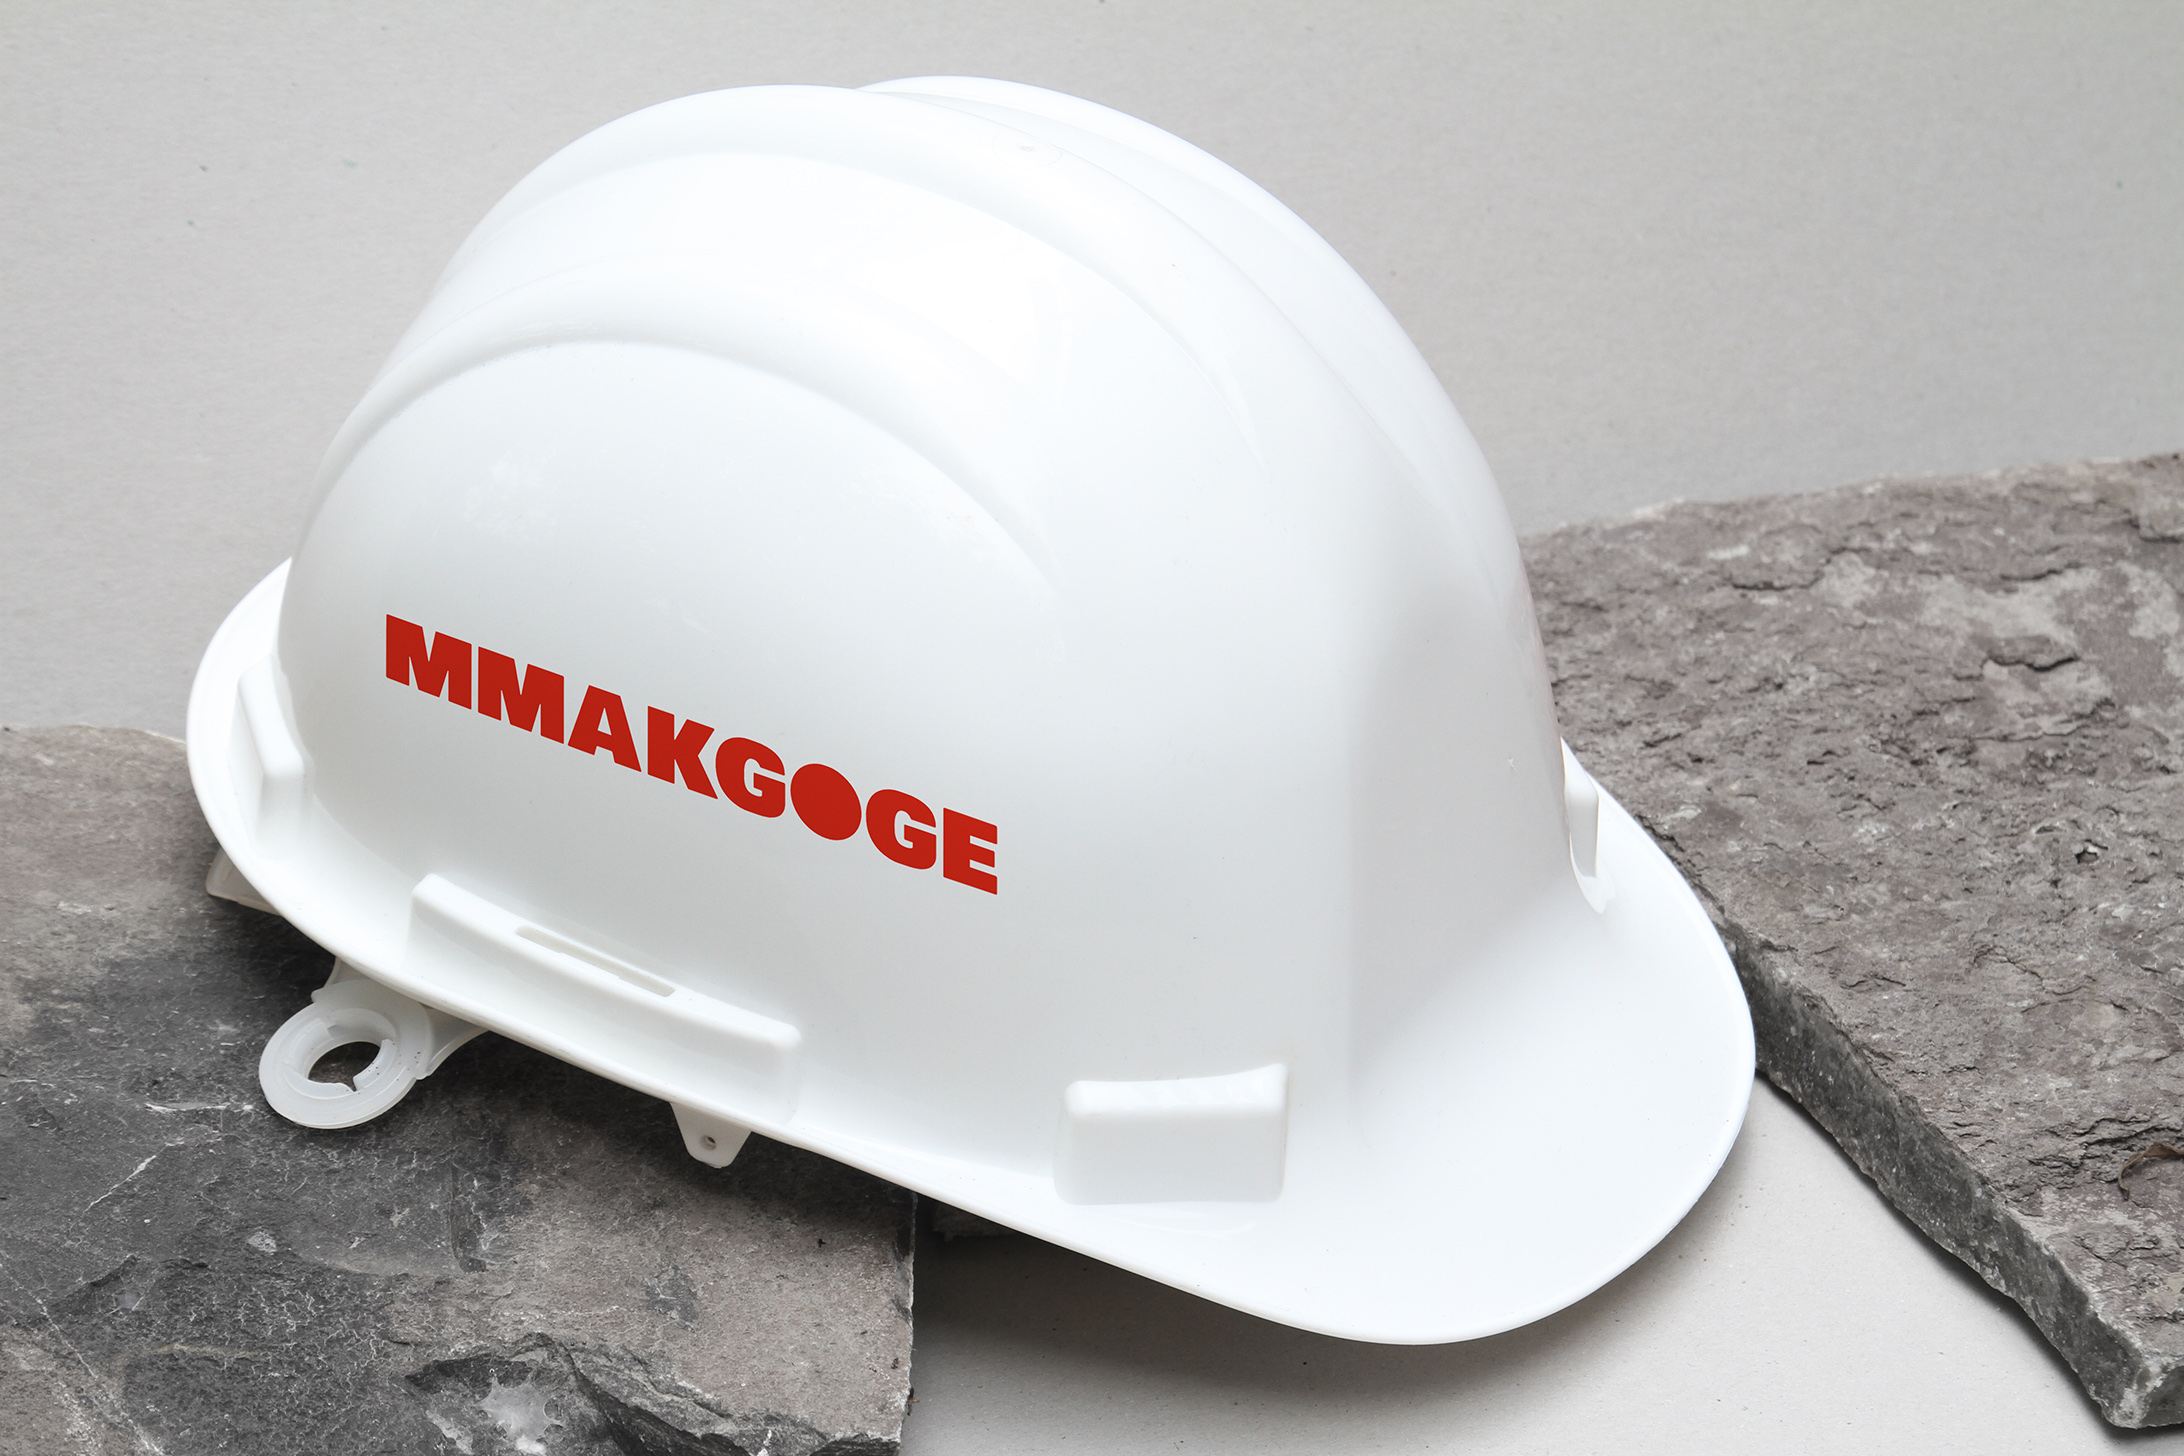 Creative Caterpillar client Mmakgoge Group  hard hat logo application.